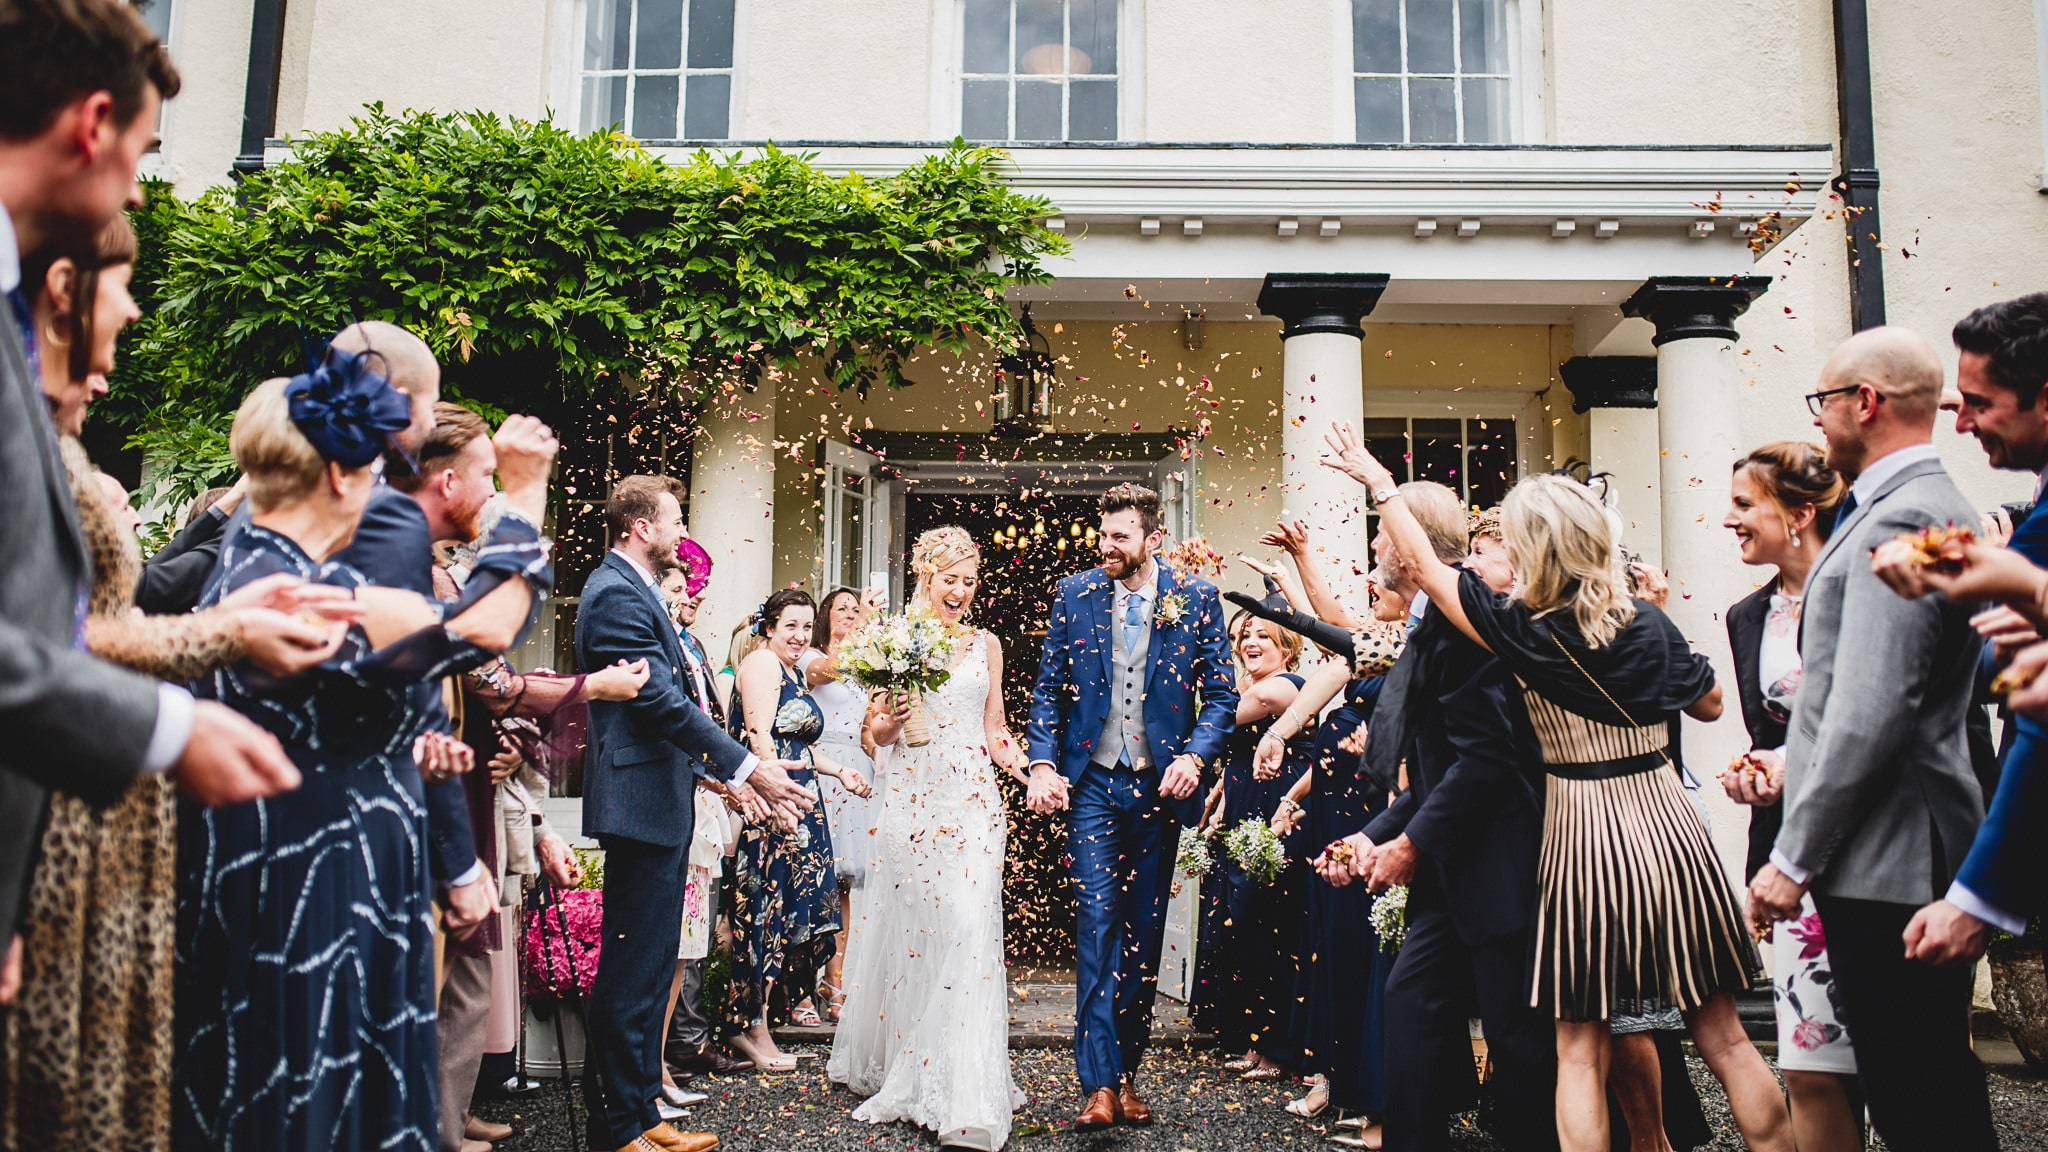 Confetti thrown over couple during their Swansea wedding photography